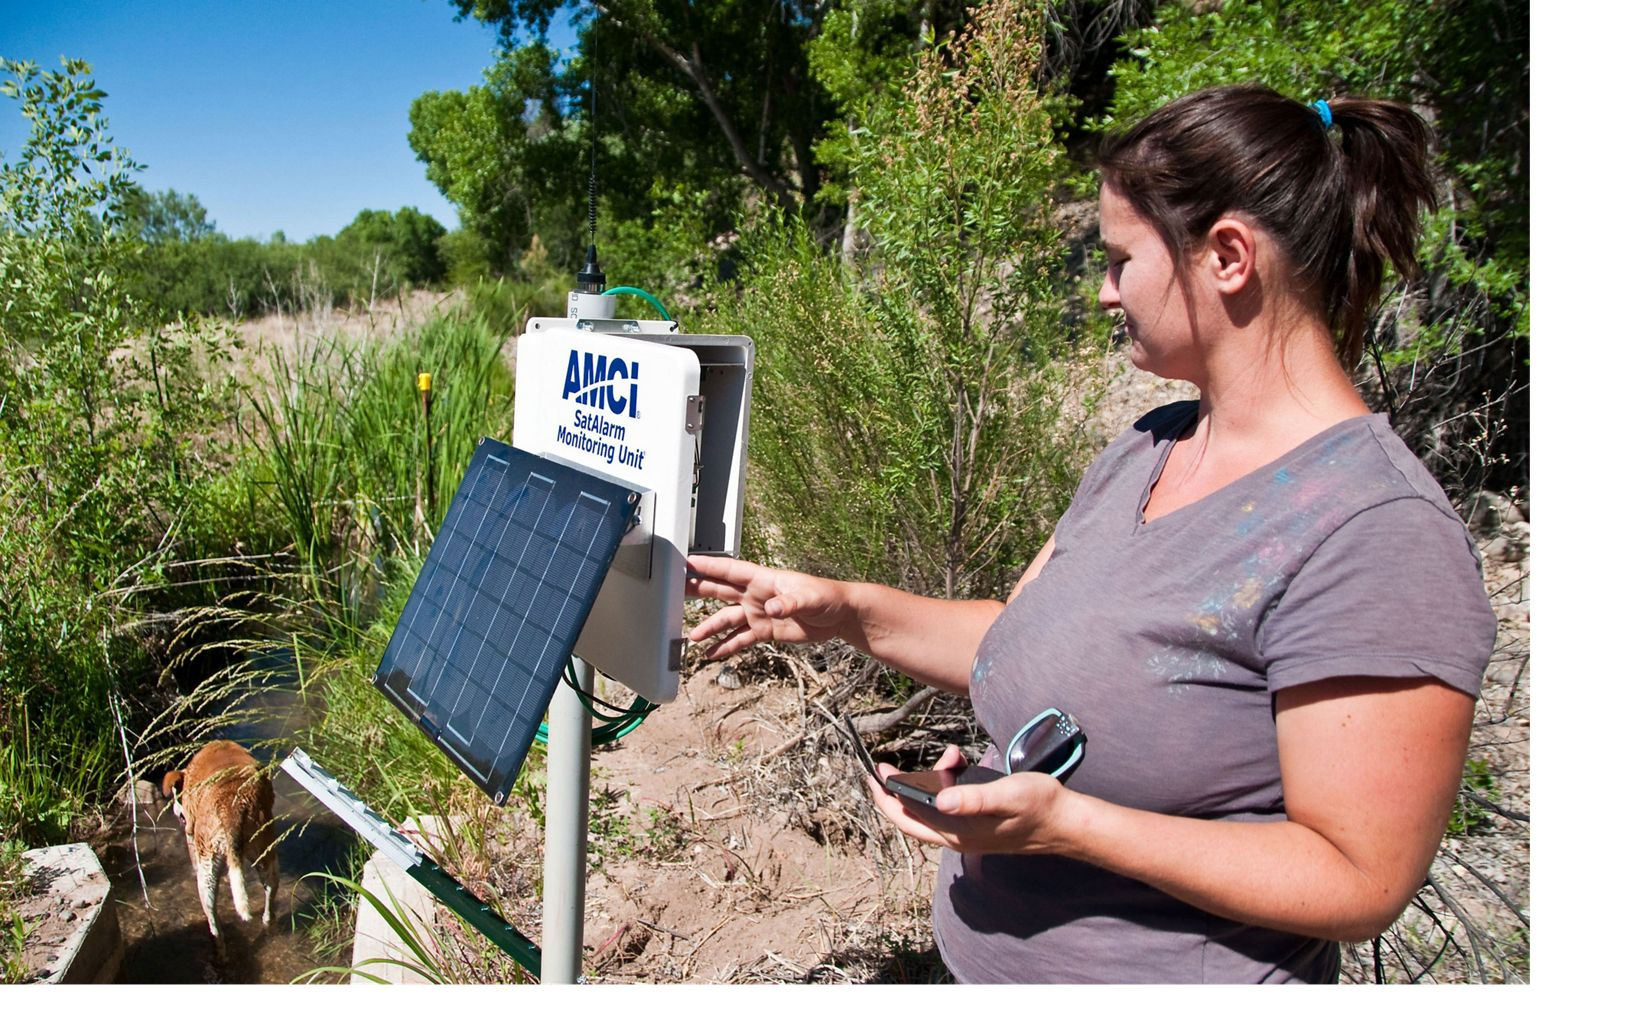 (INTERNAL RIGHTS) – Photo of Eurika Irrigation Ditch with Kim Schonek, TNC Verde Projects manager, checking gauge on the Shield Ranch. A portion of the system supplied by the Verde River.  Image size: 9.4 x 14.29 inches at 300 dpi. Photo credit: © Stephen Trimble